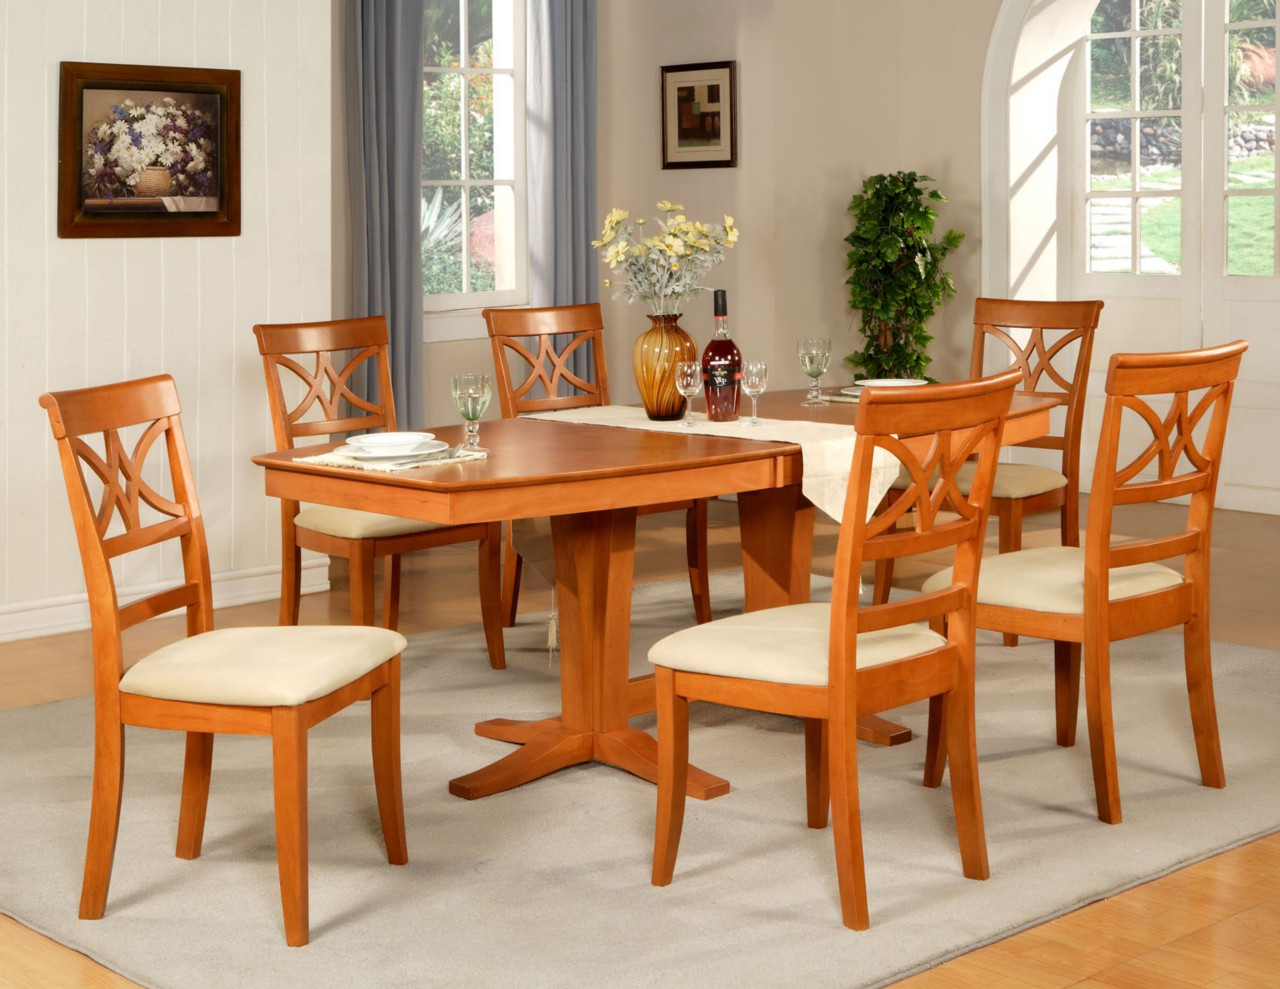 Wooden Dining Set ~ Pc dining room set table and wood seat chairs in light